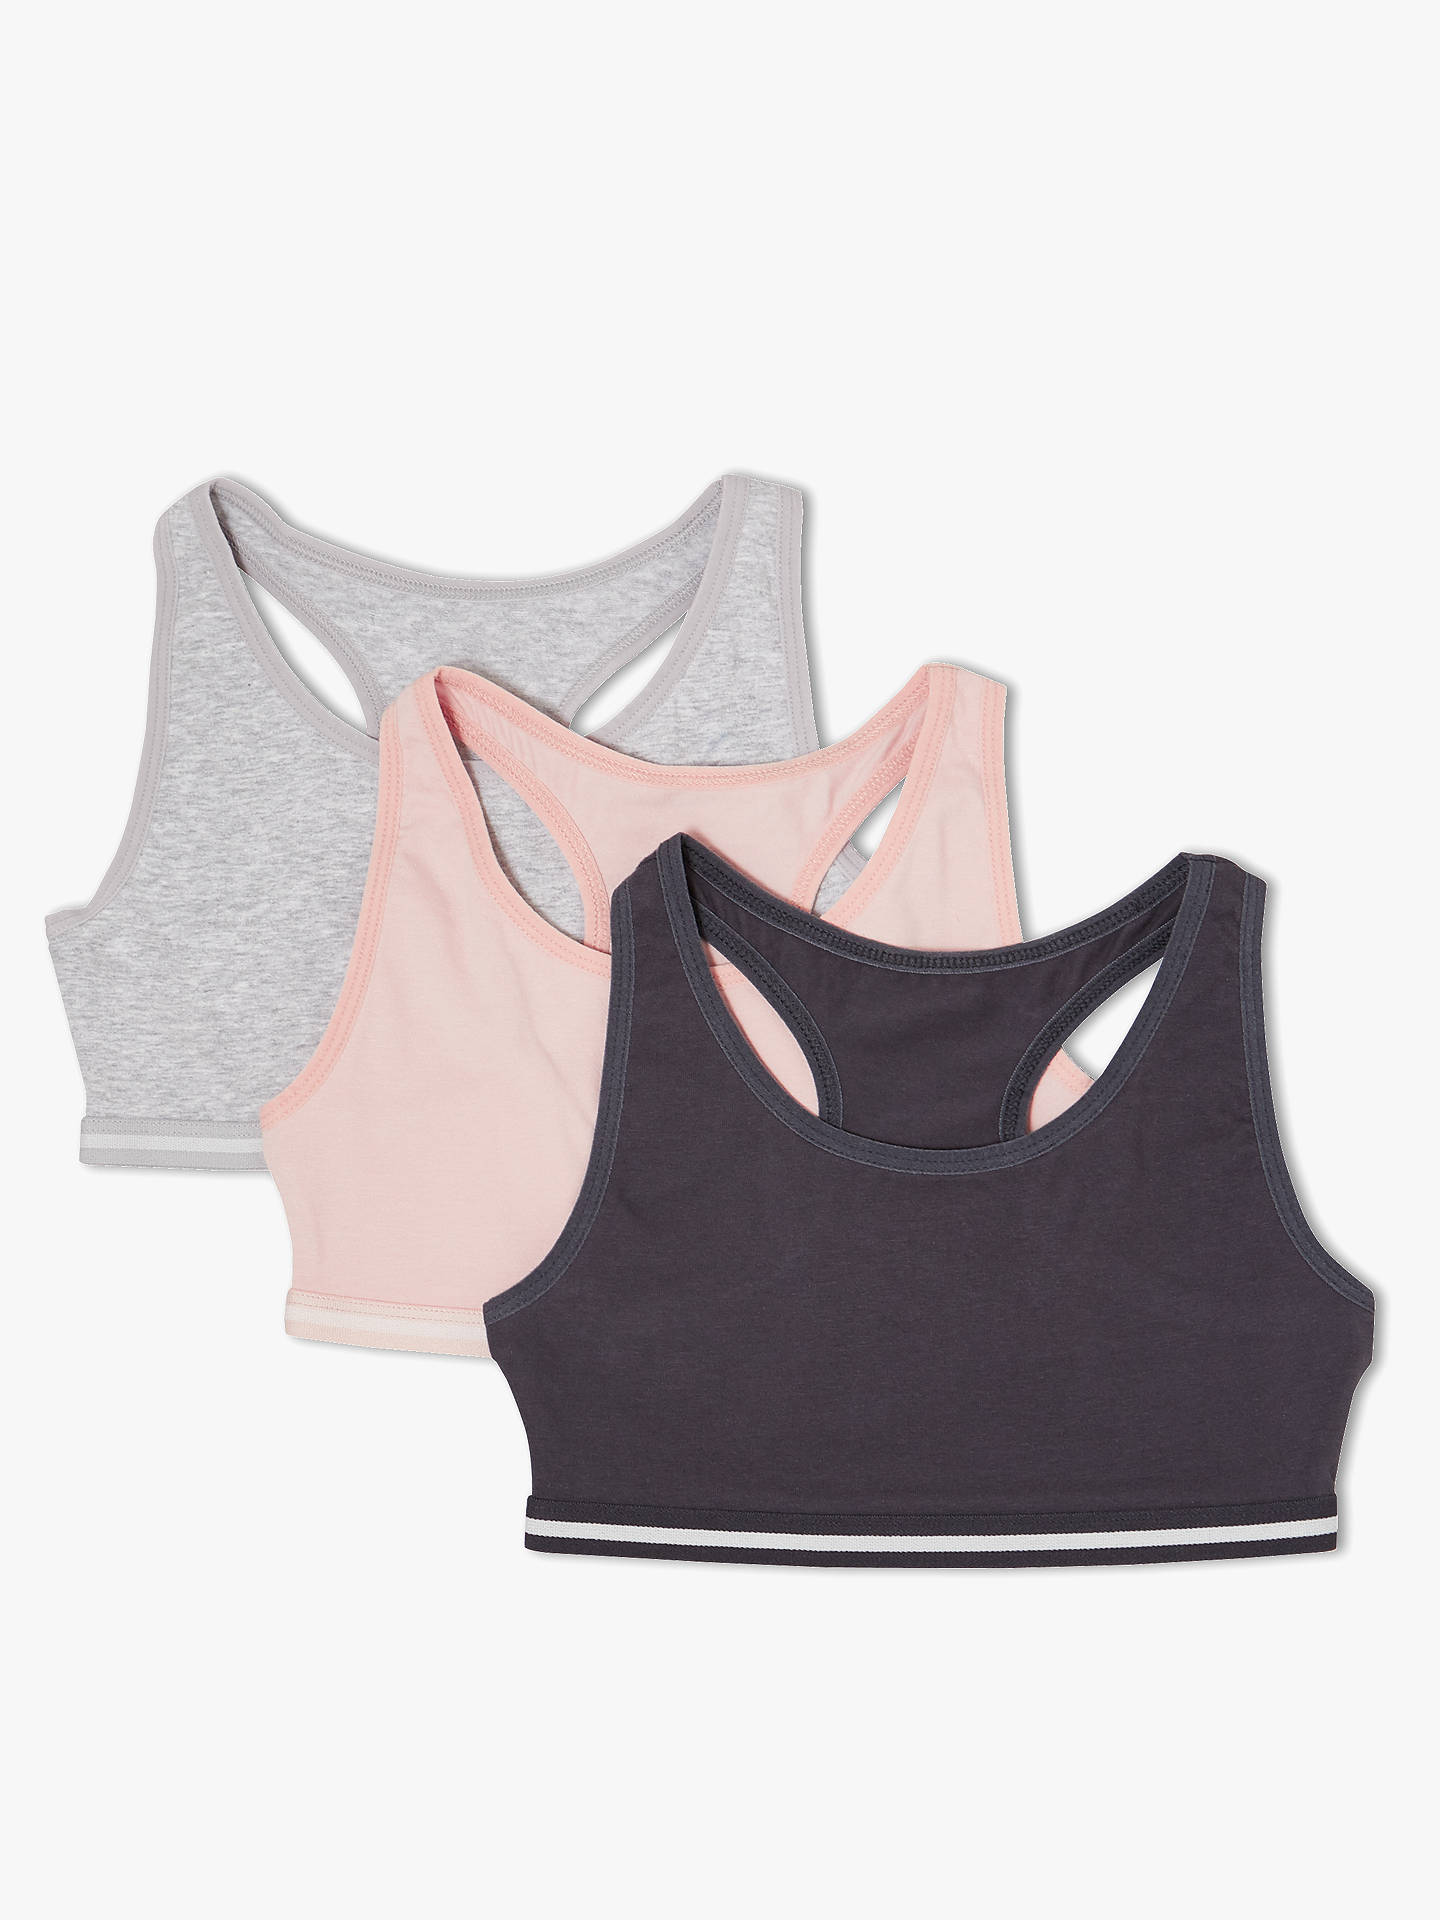 BuyJohn Lewis & Partners Girls' Sports Crop Tops, Pack of 3, Multi, 8 years Online at johnlewis.com